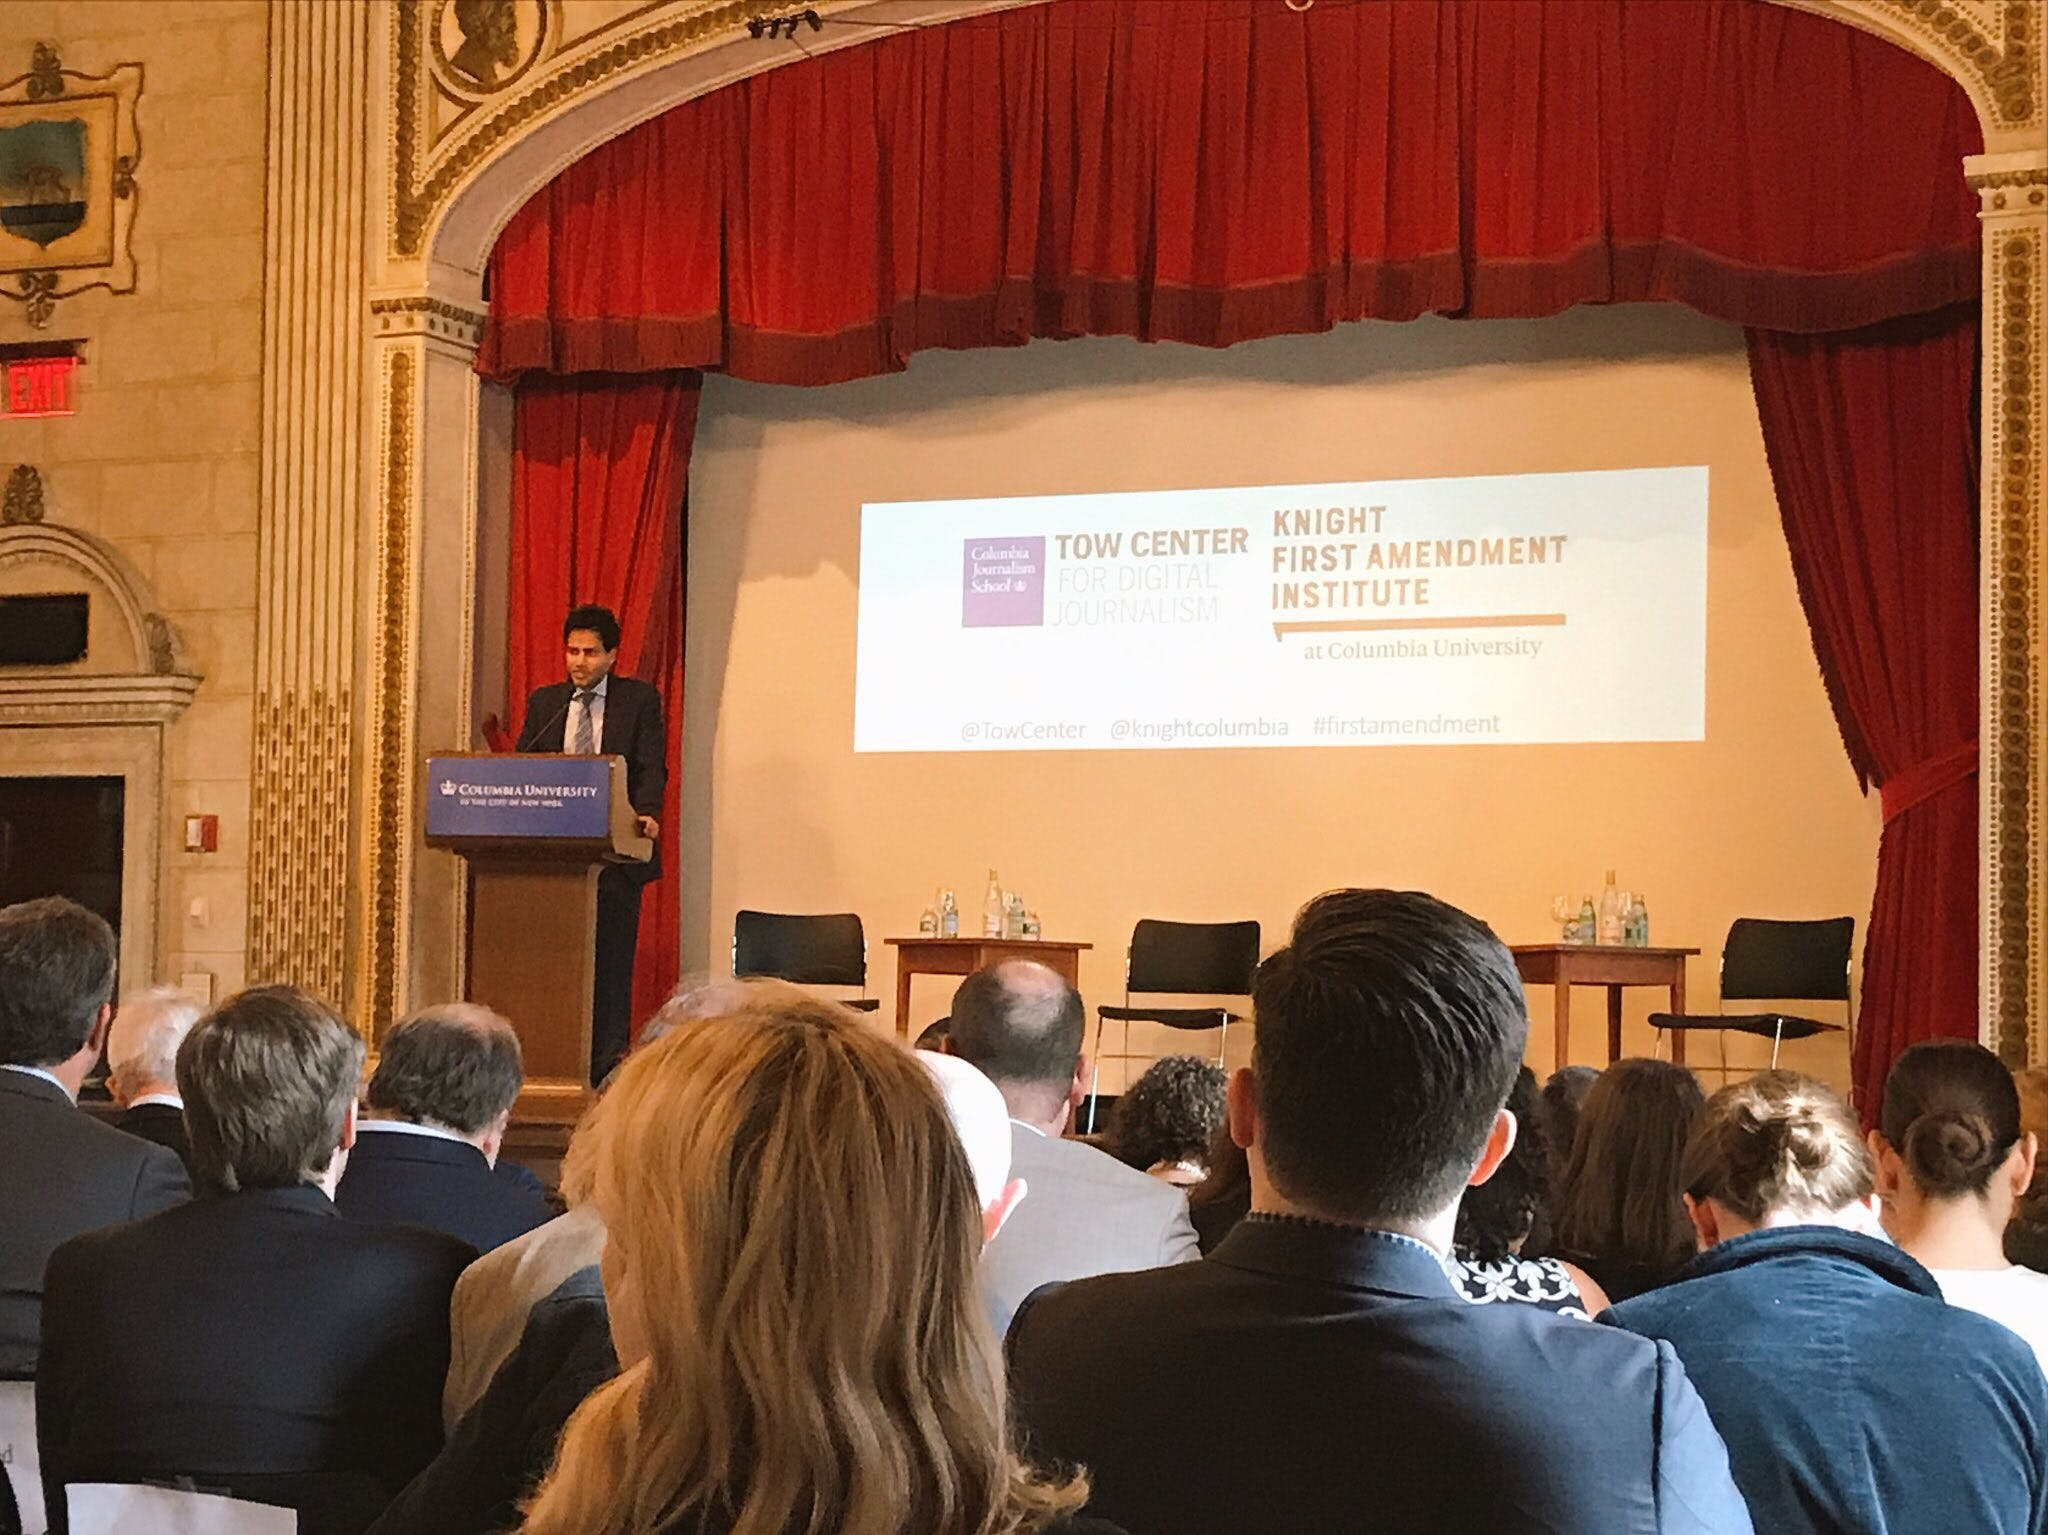 <p><em>Jameel Jaffer speaks to the crowd at &quot;Disrupted: Speech and Democracy in the Digital Age,&quot; the inaugural event of the Knight First Amendment Institute at Columbia University. Photo by Aparna Mukherjee.</em></p>